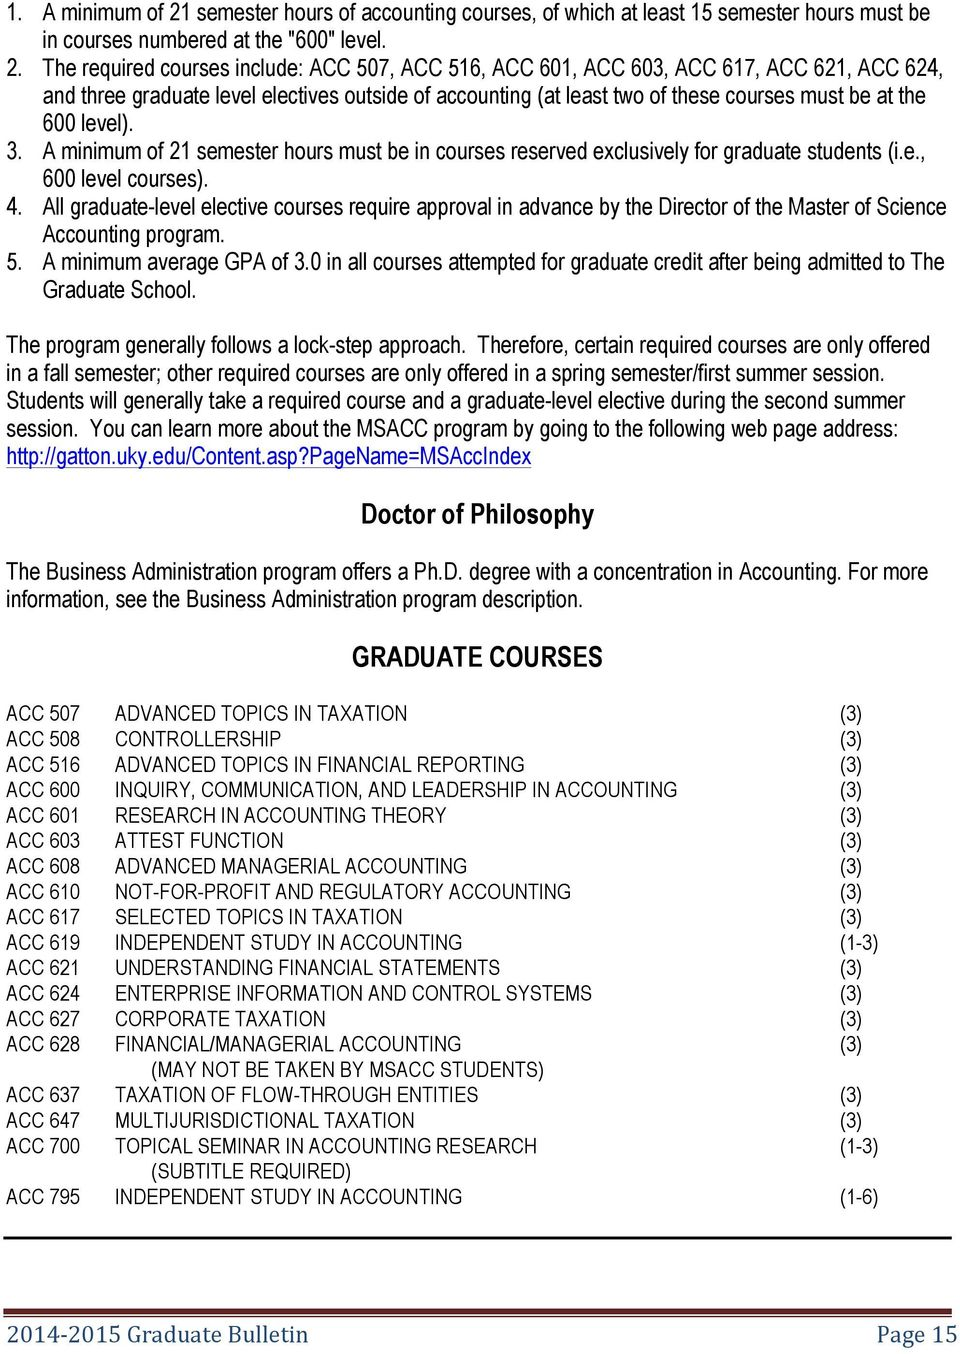 The required courses include: ACC 507, ACC 516, ACC 601, ACC 603, ACC 617, ACC 621, ACC 624, and three graduate level electives outside of accounting (at least two of these courses must be at the 600